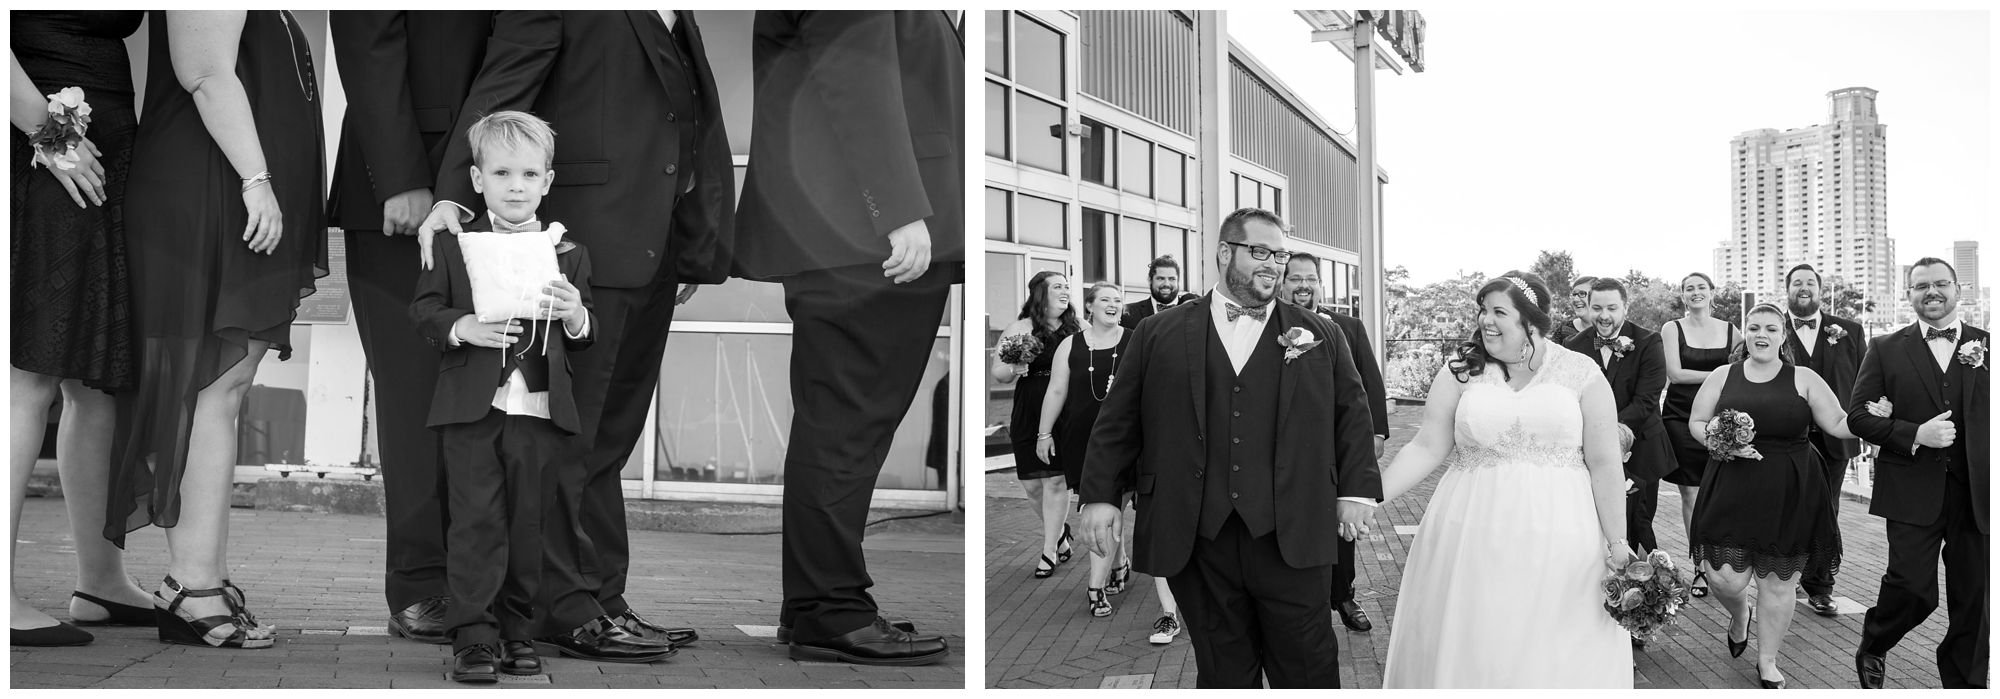 Bridal party and ring bearer at Baltimore Museum of Industry wedding